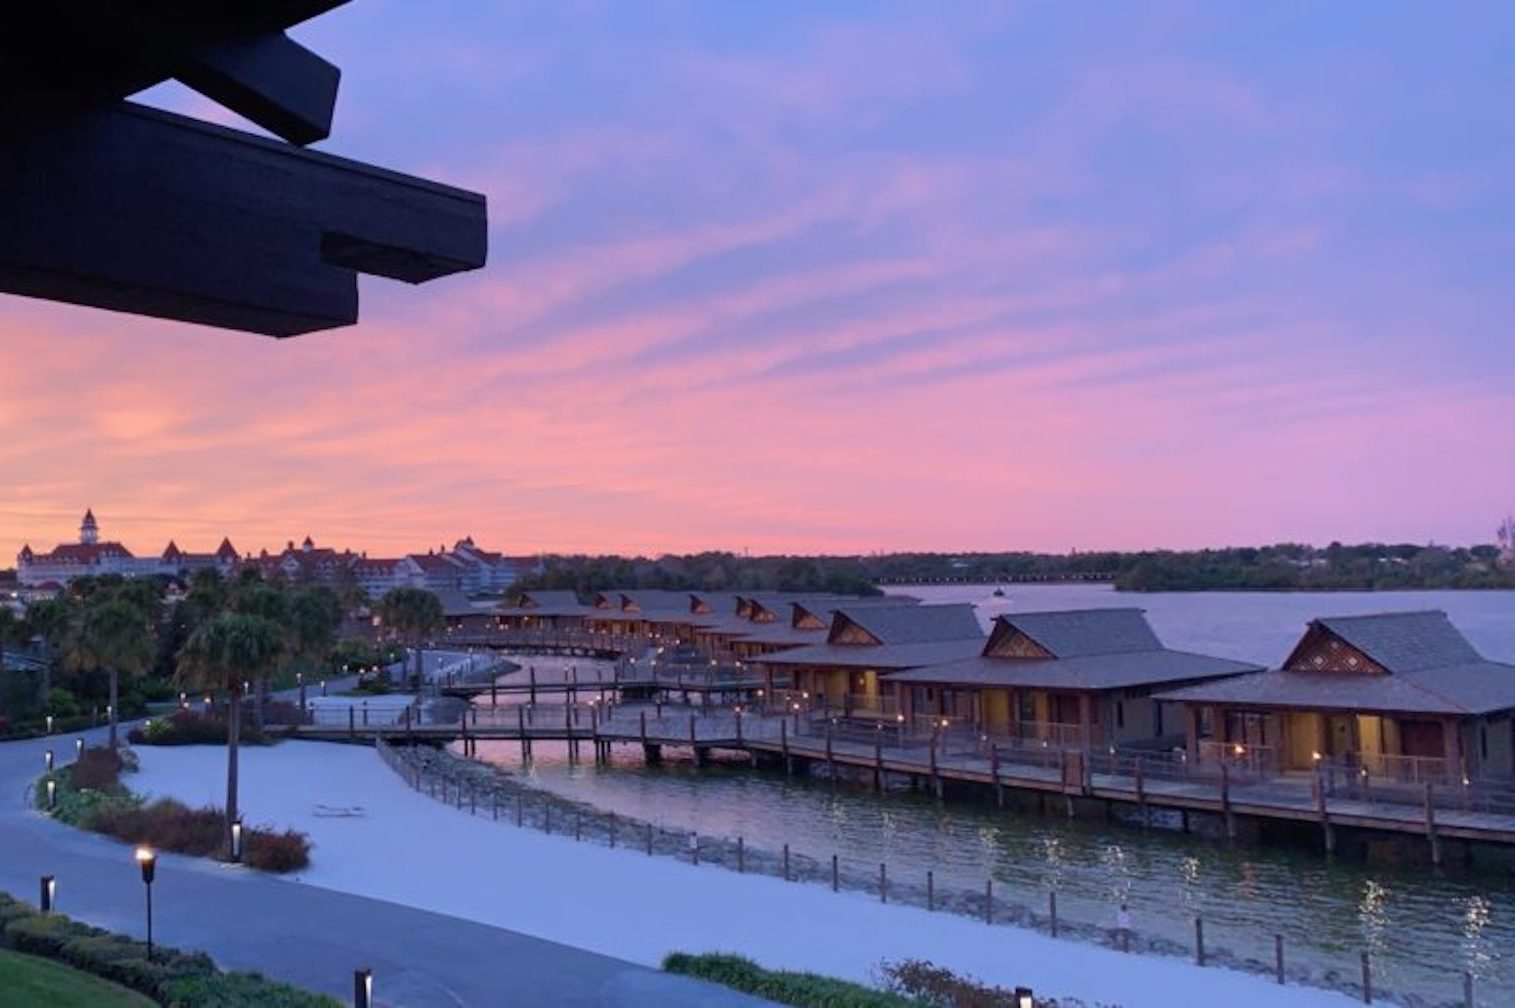 Disney DVC Polynesian view of water bungalows at sunset